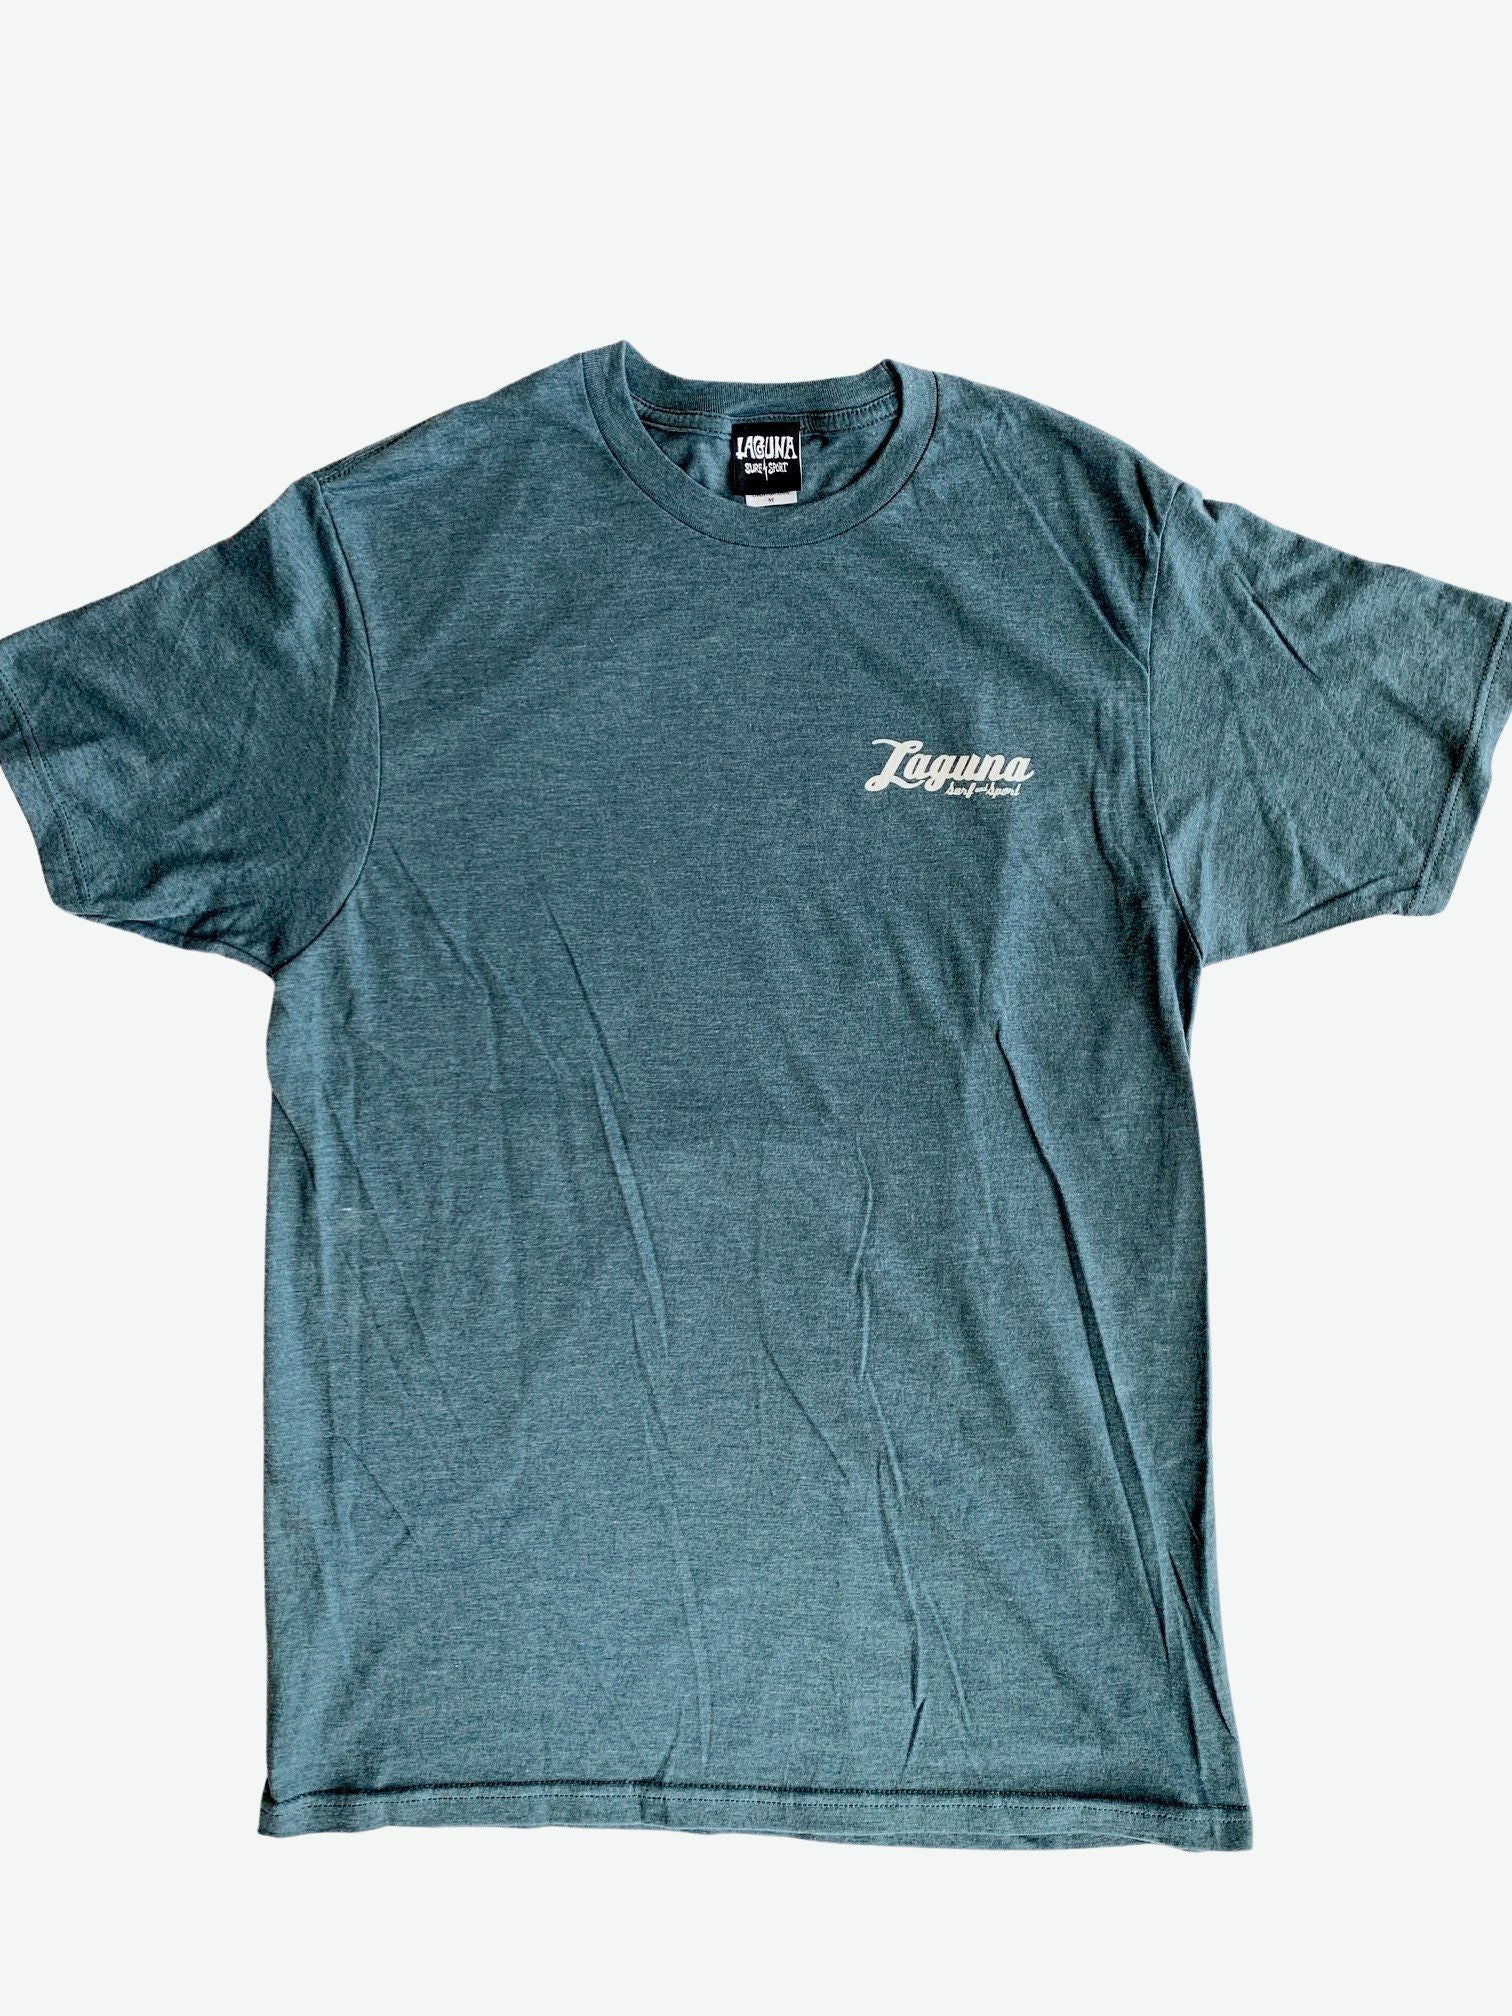 BROOKS STREET  Mens Short Sleeve Tee  (More Colors Available)  - Laguna Surf & Sport